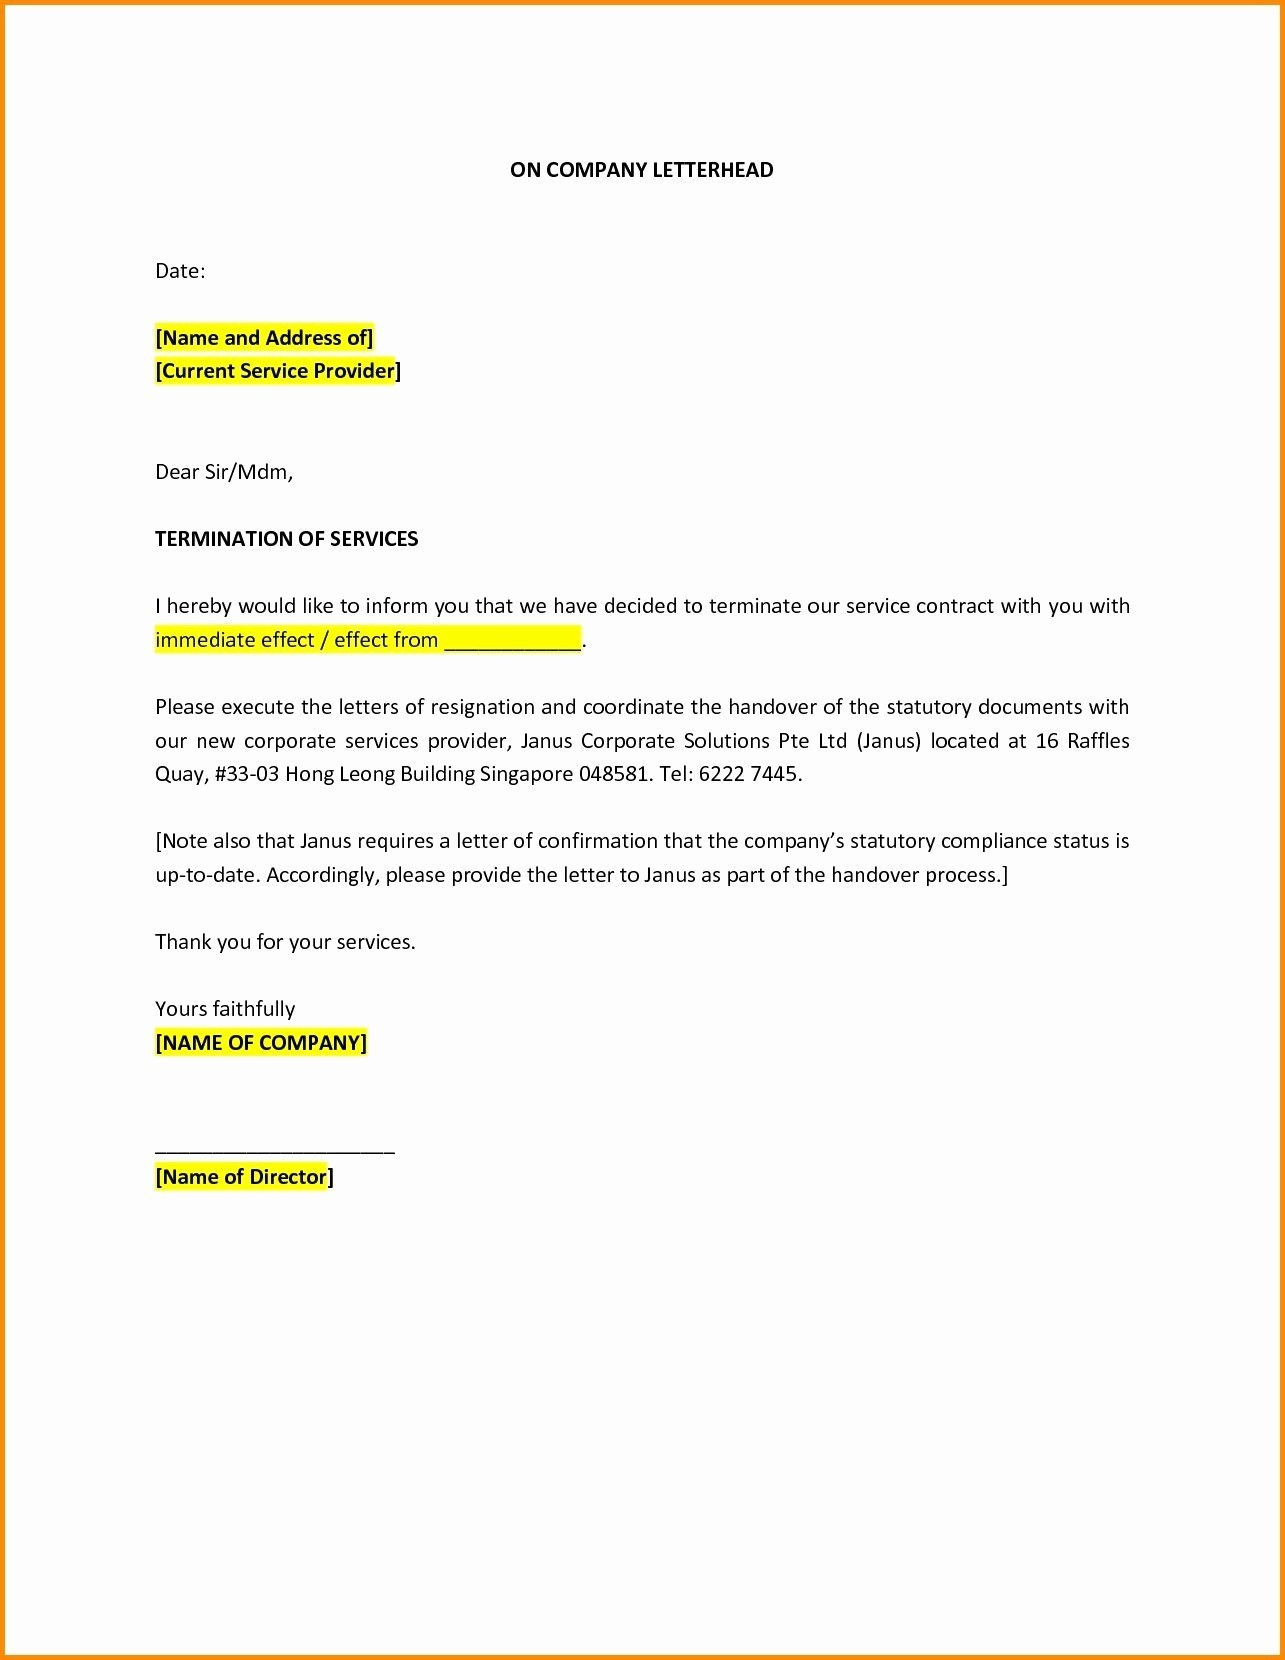 Car Insurance Cancellation Letter - BLOG OTOMOTIF KEREN